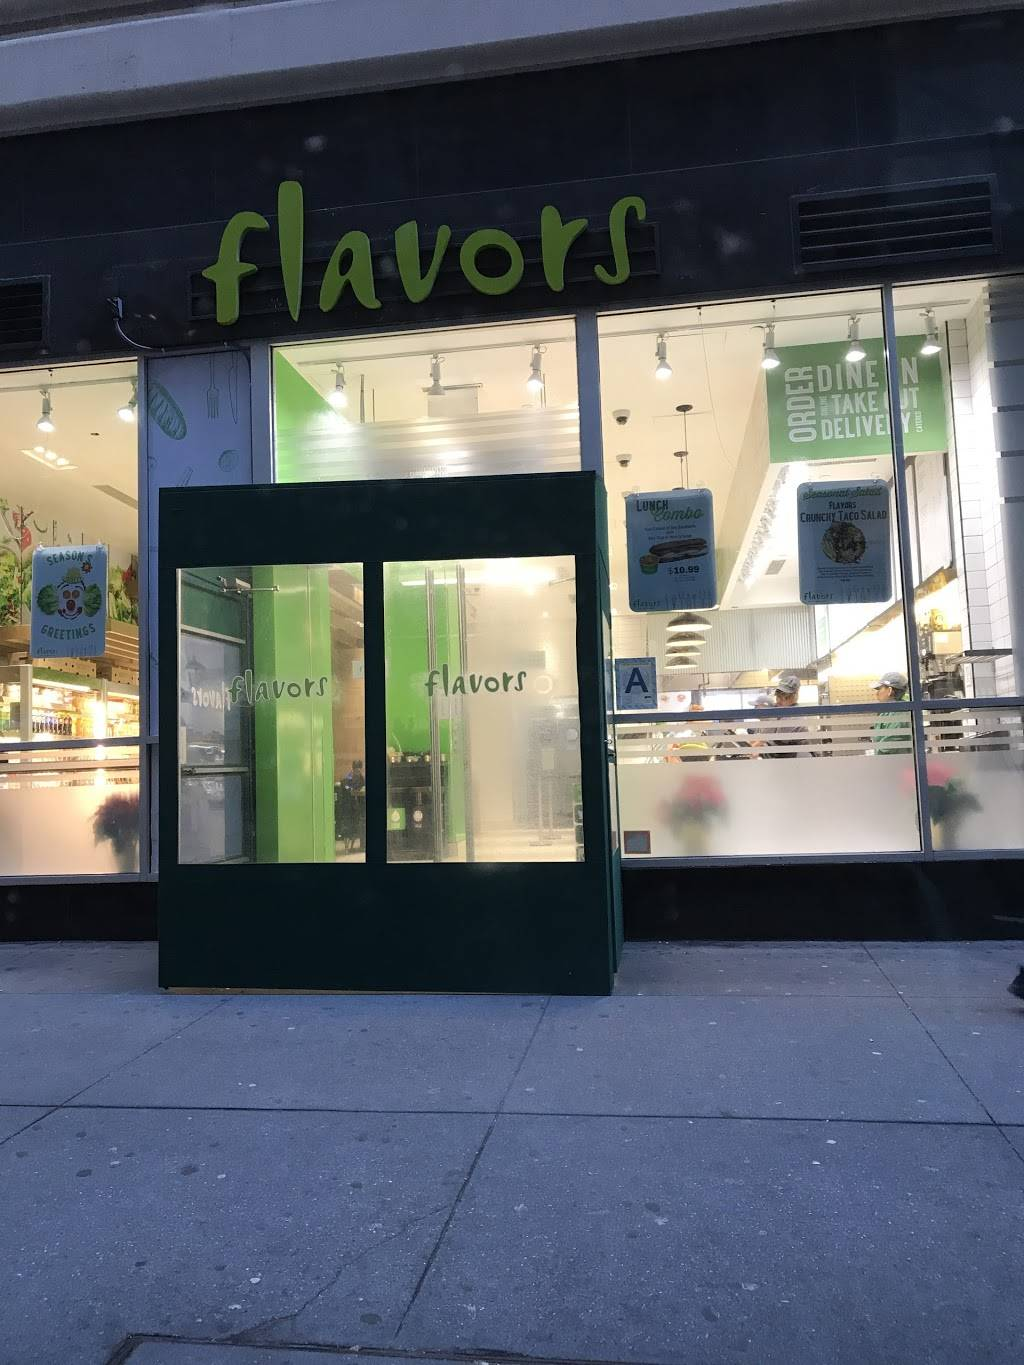 Flavors   restaurant   42 Broadway, New York, NY 10004, USA   2126689800 OR +1 212-668-9800